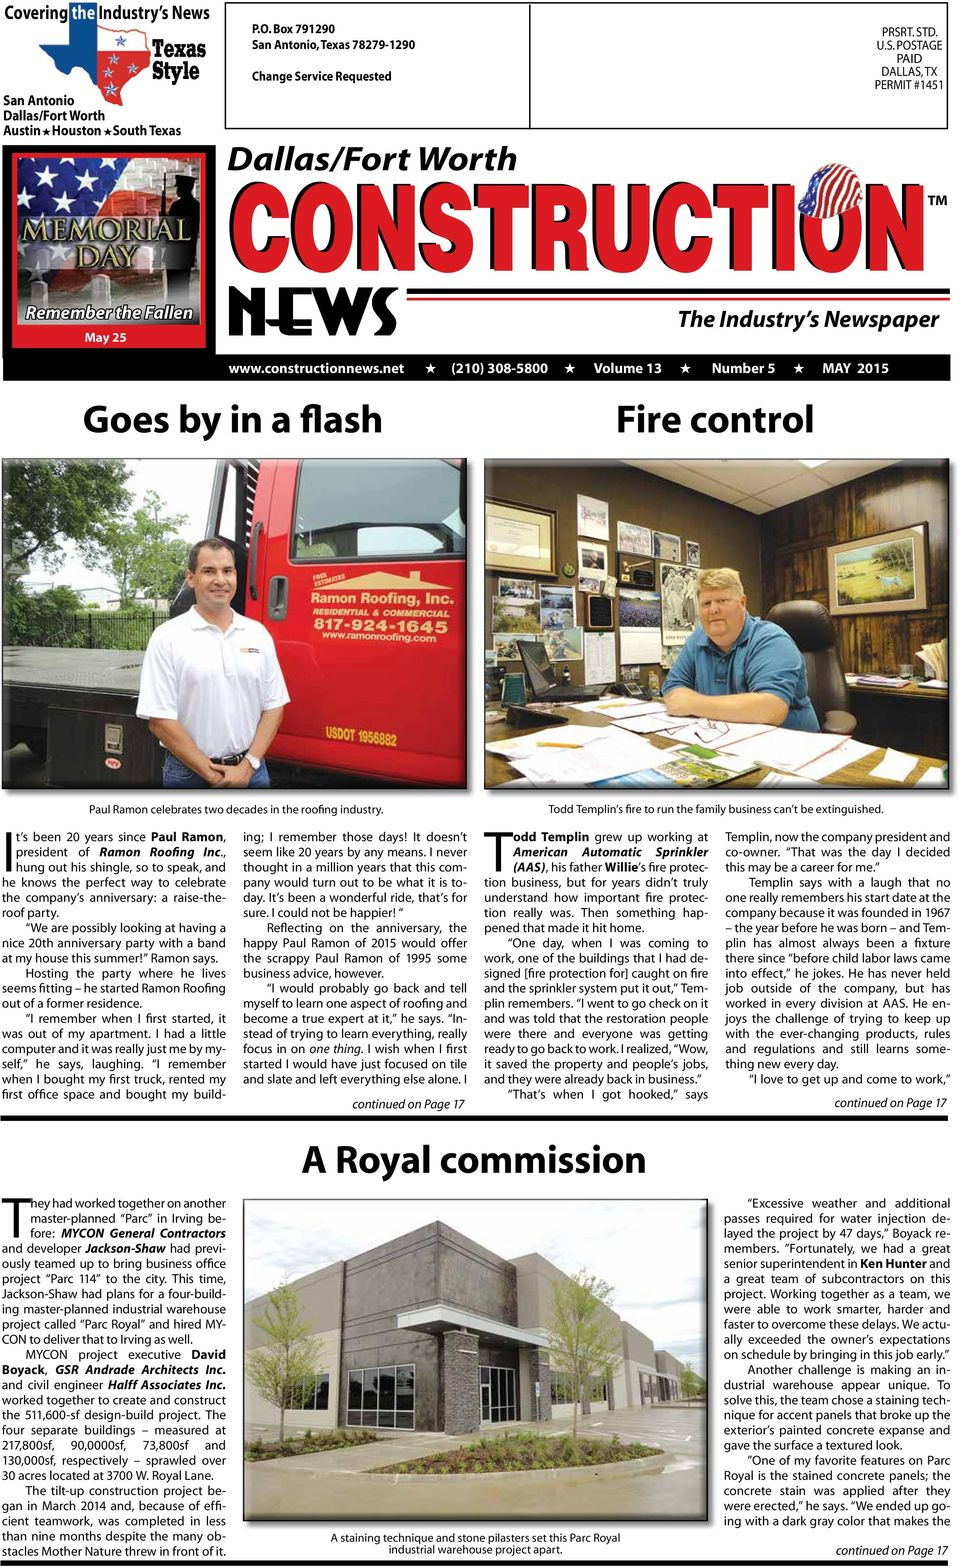 net H (210) 308-5800 H Volume 13 H Number 5 H MAY 2015 Goes by in a flash Fire control Paul Ramon celebrates two decades in the roofing industry.